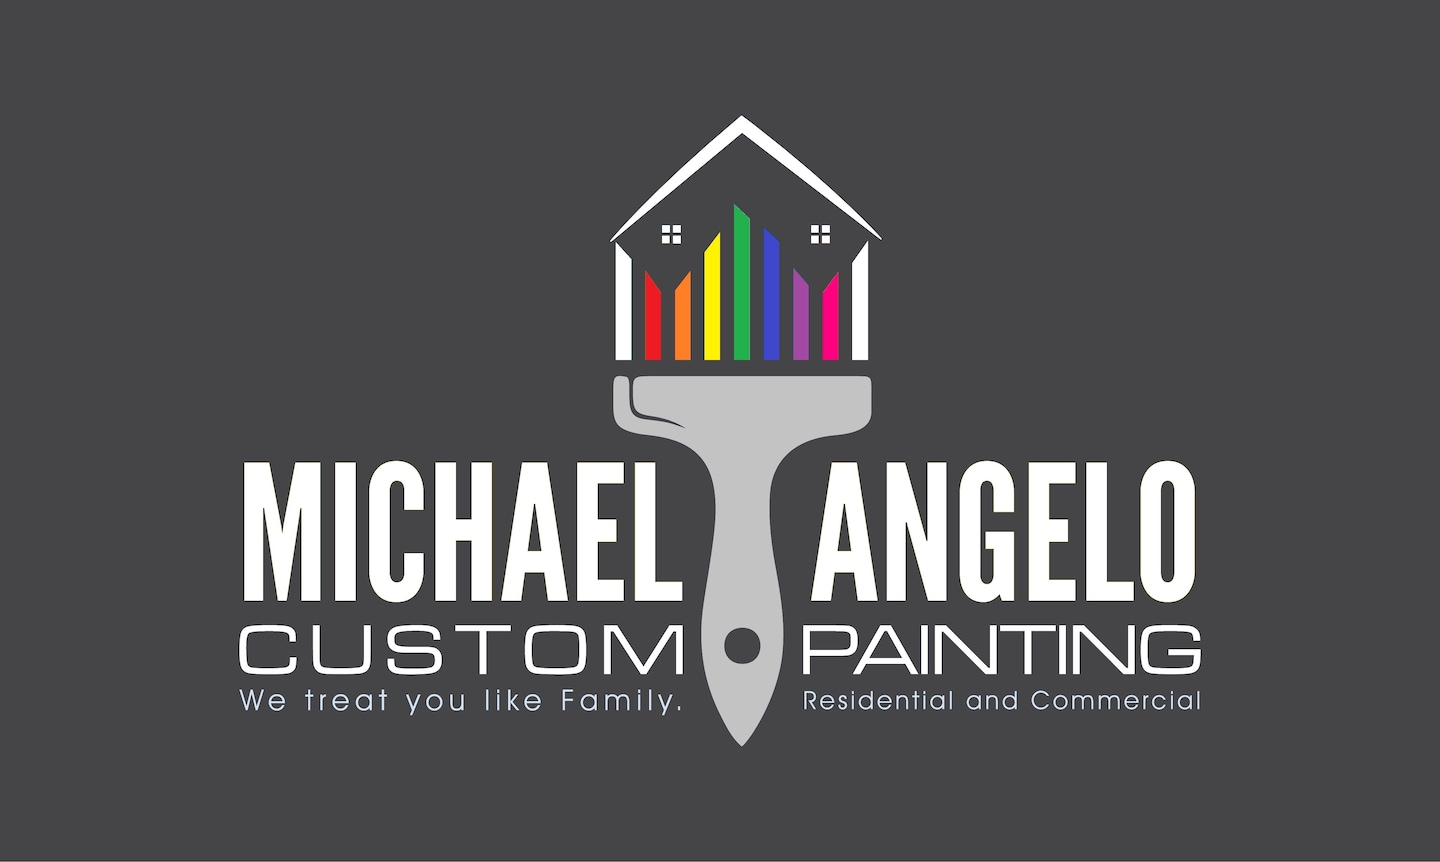 Michael Angelo Custom Painting Inc